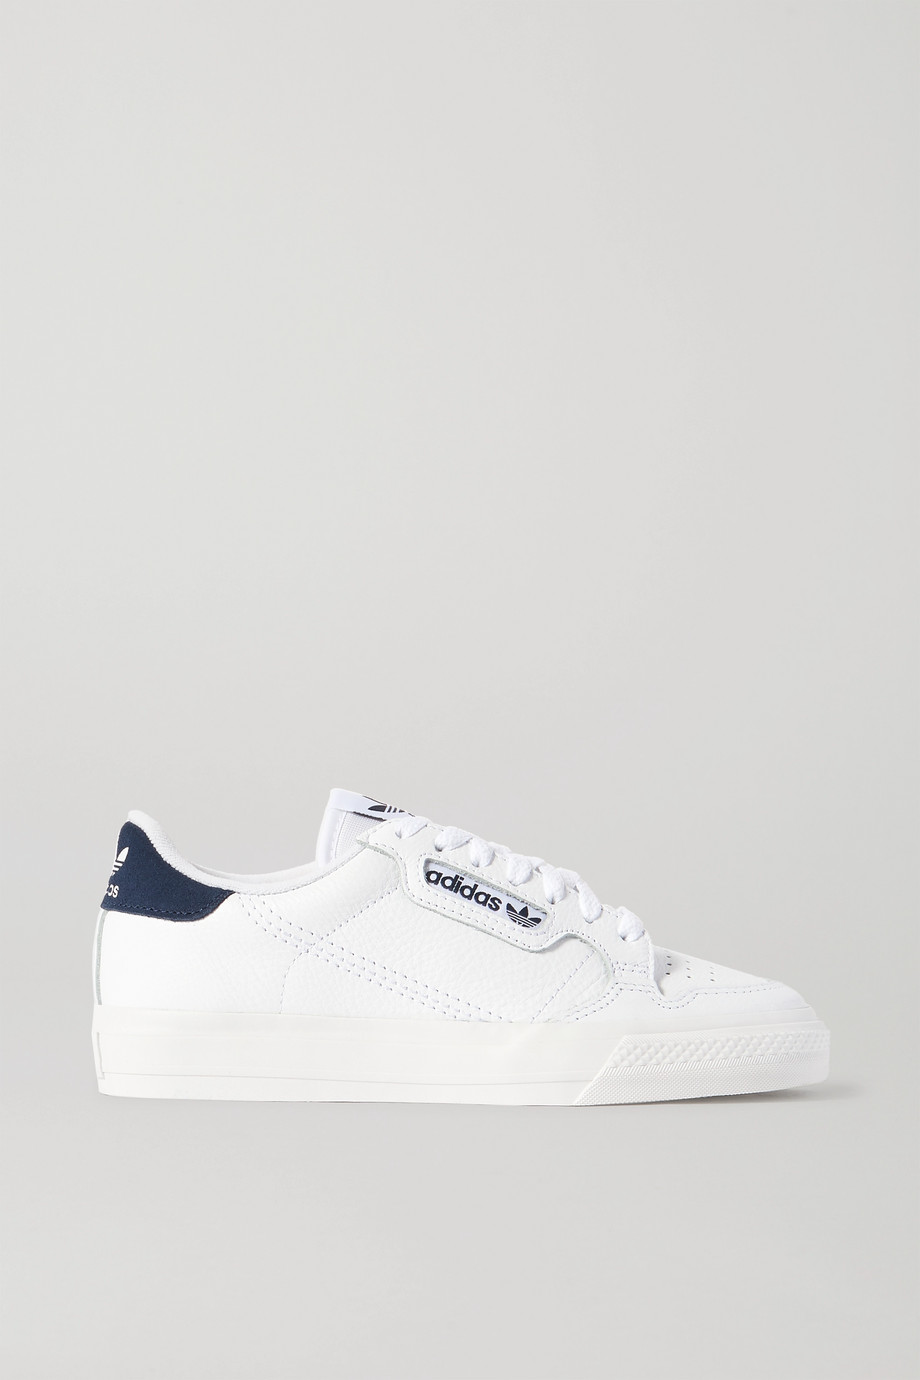 adidas Originals Continental 80 suede-trimmed textured-leather sneakers